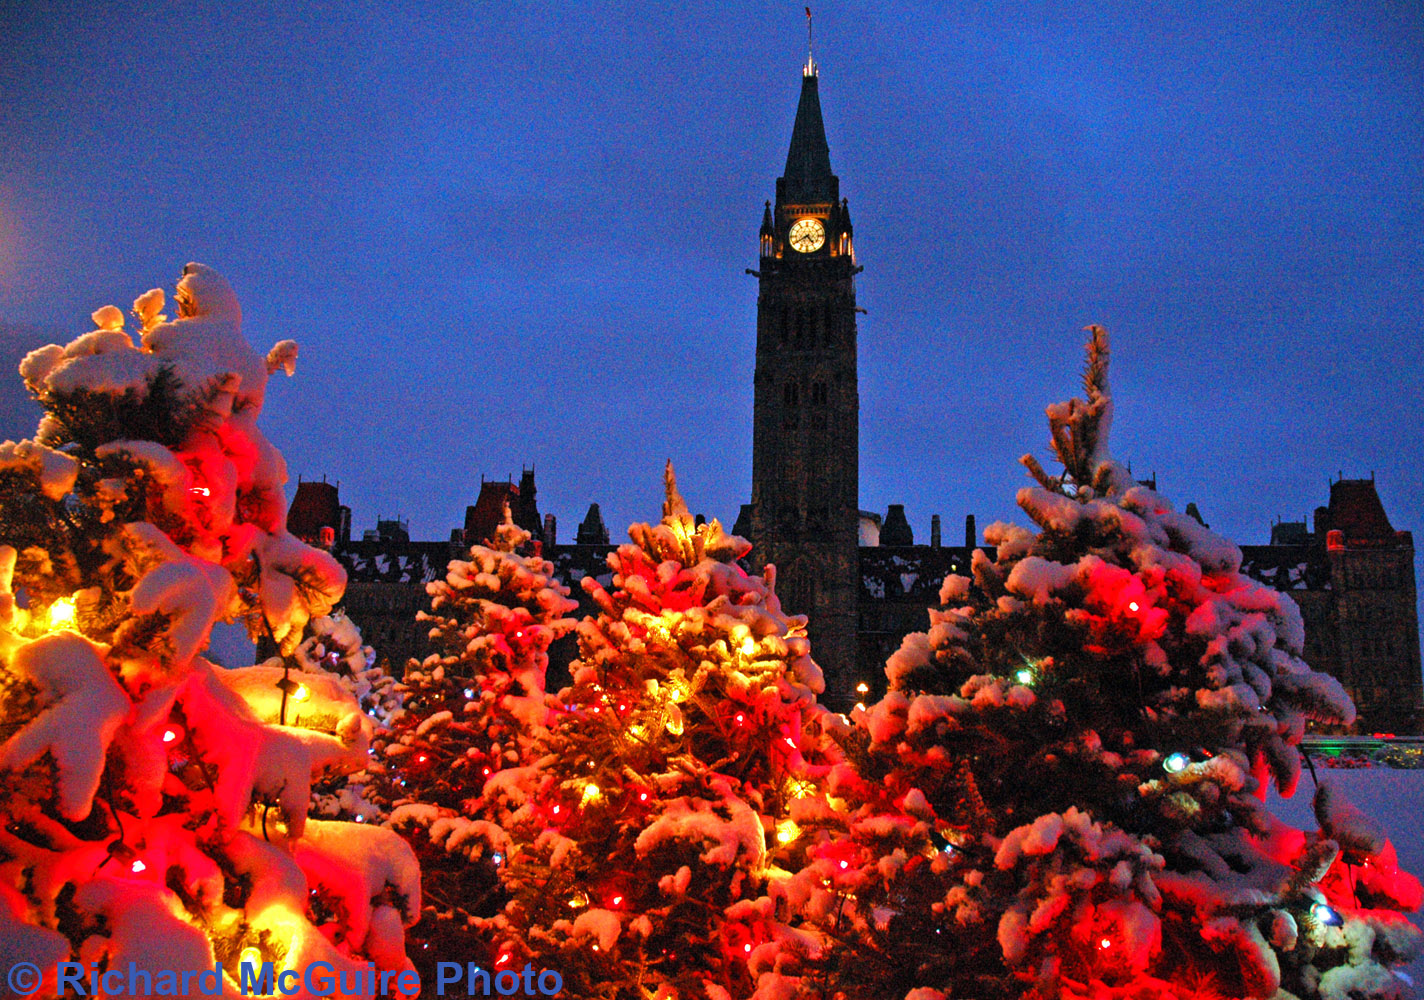 Canada's Parliament Buildings (1) in Winter